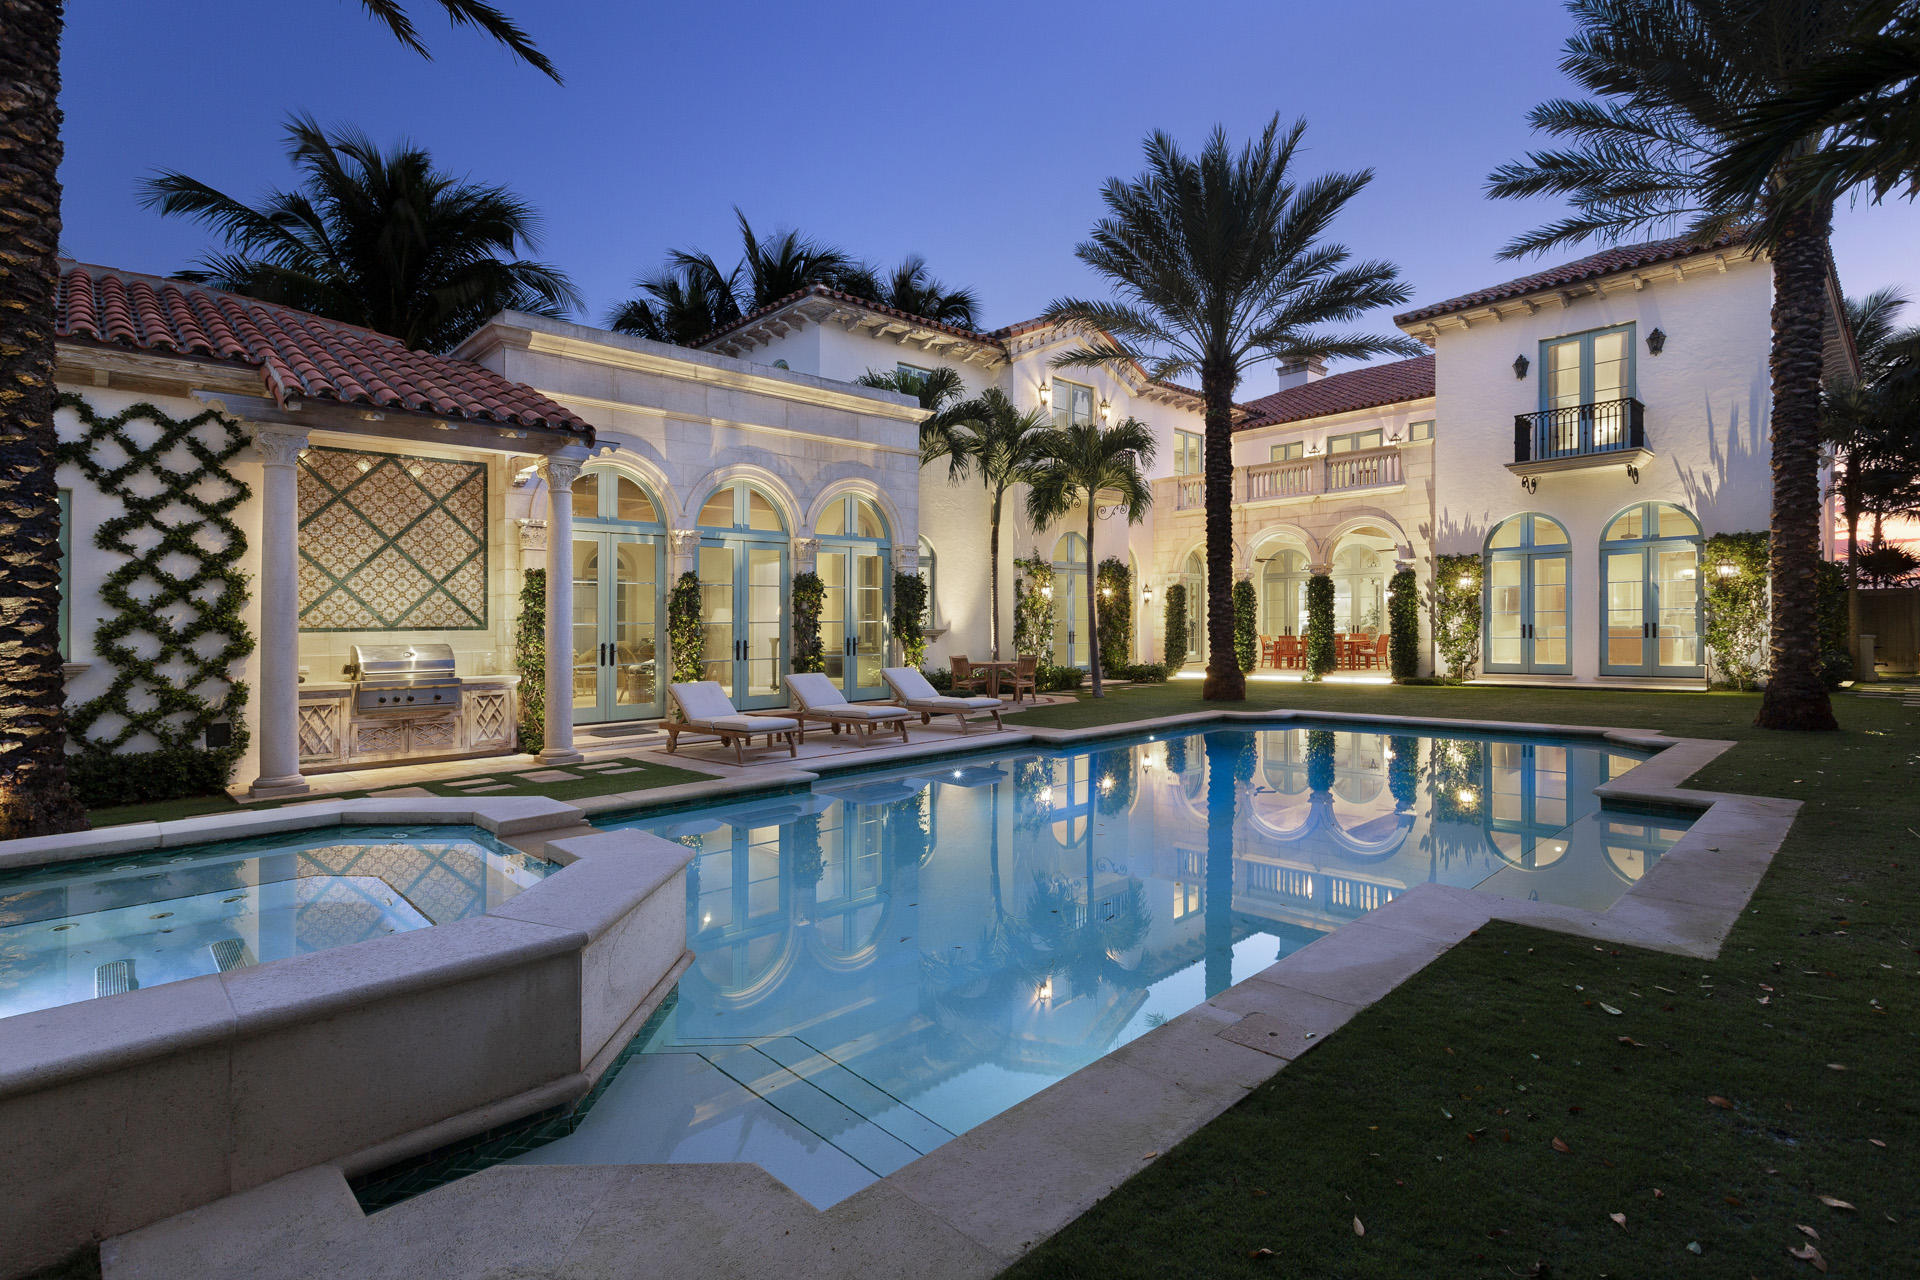 New Home for sale at 516 Ocean Boulevard in Palm Beach